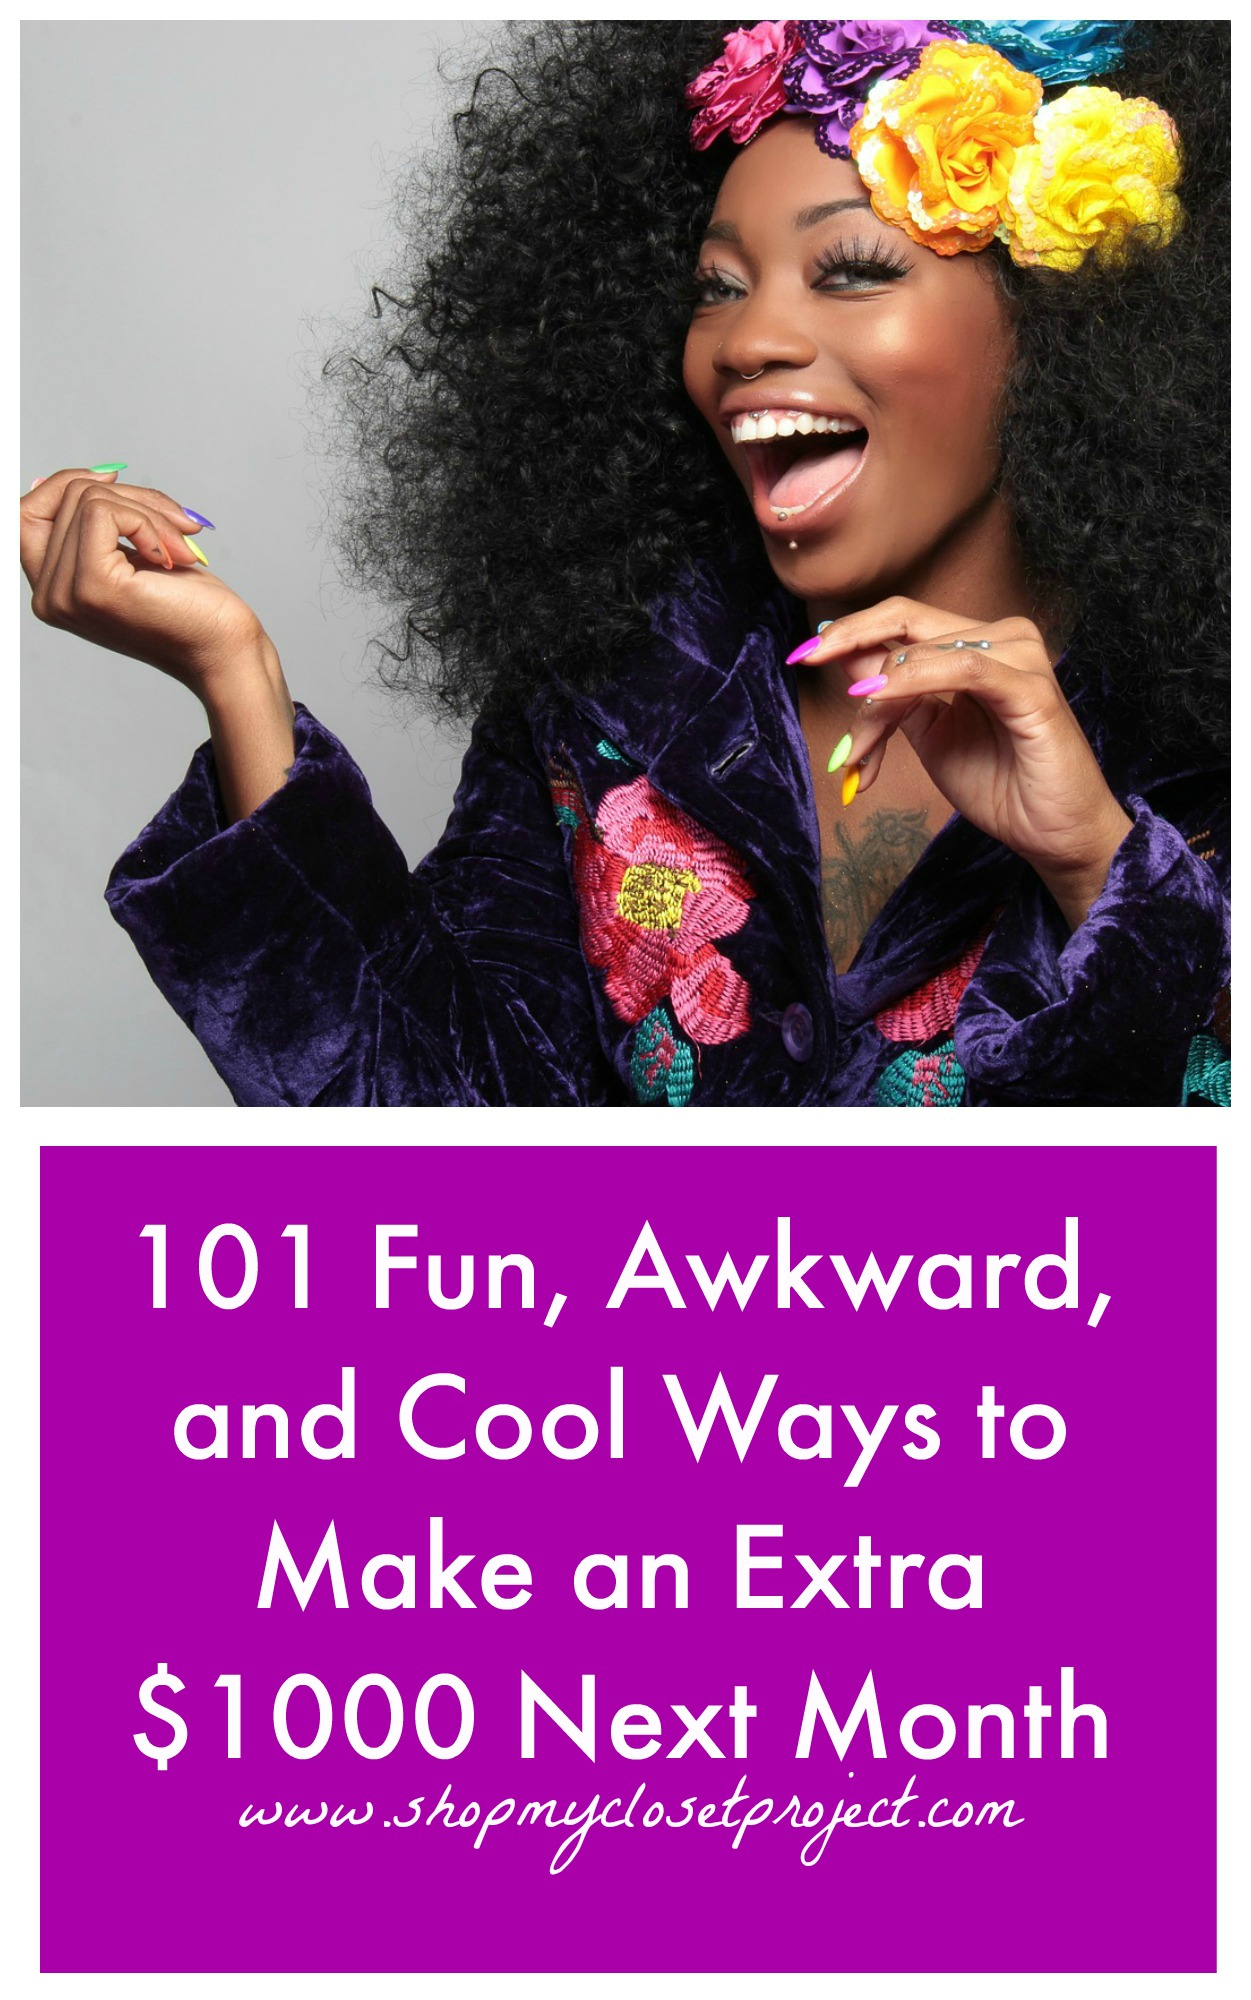 101 Fun, Awkward, and Cool Ways to Make an Extra $1000 Next Month